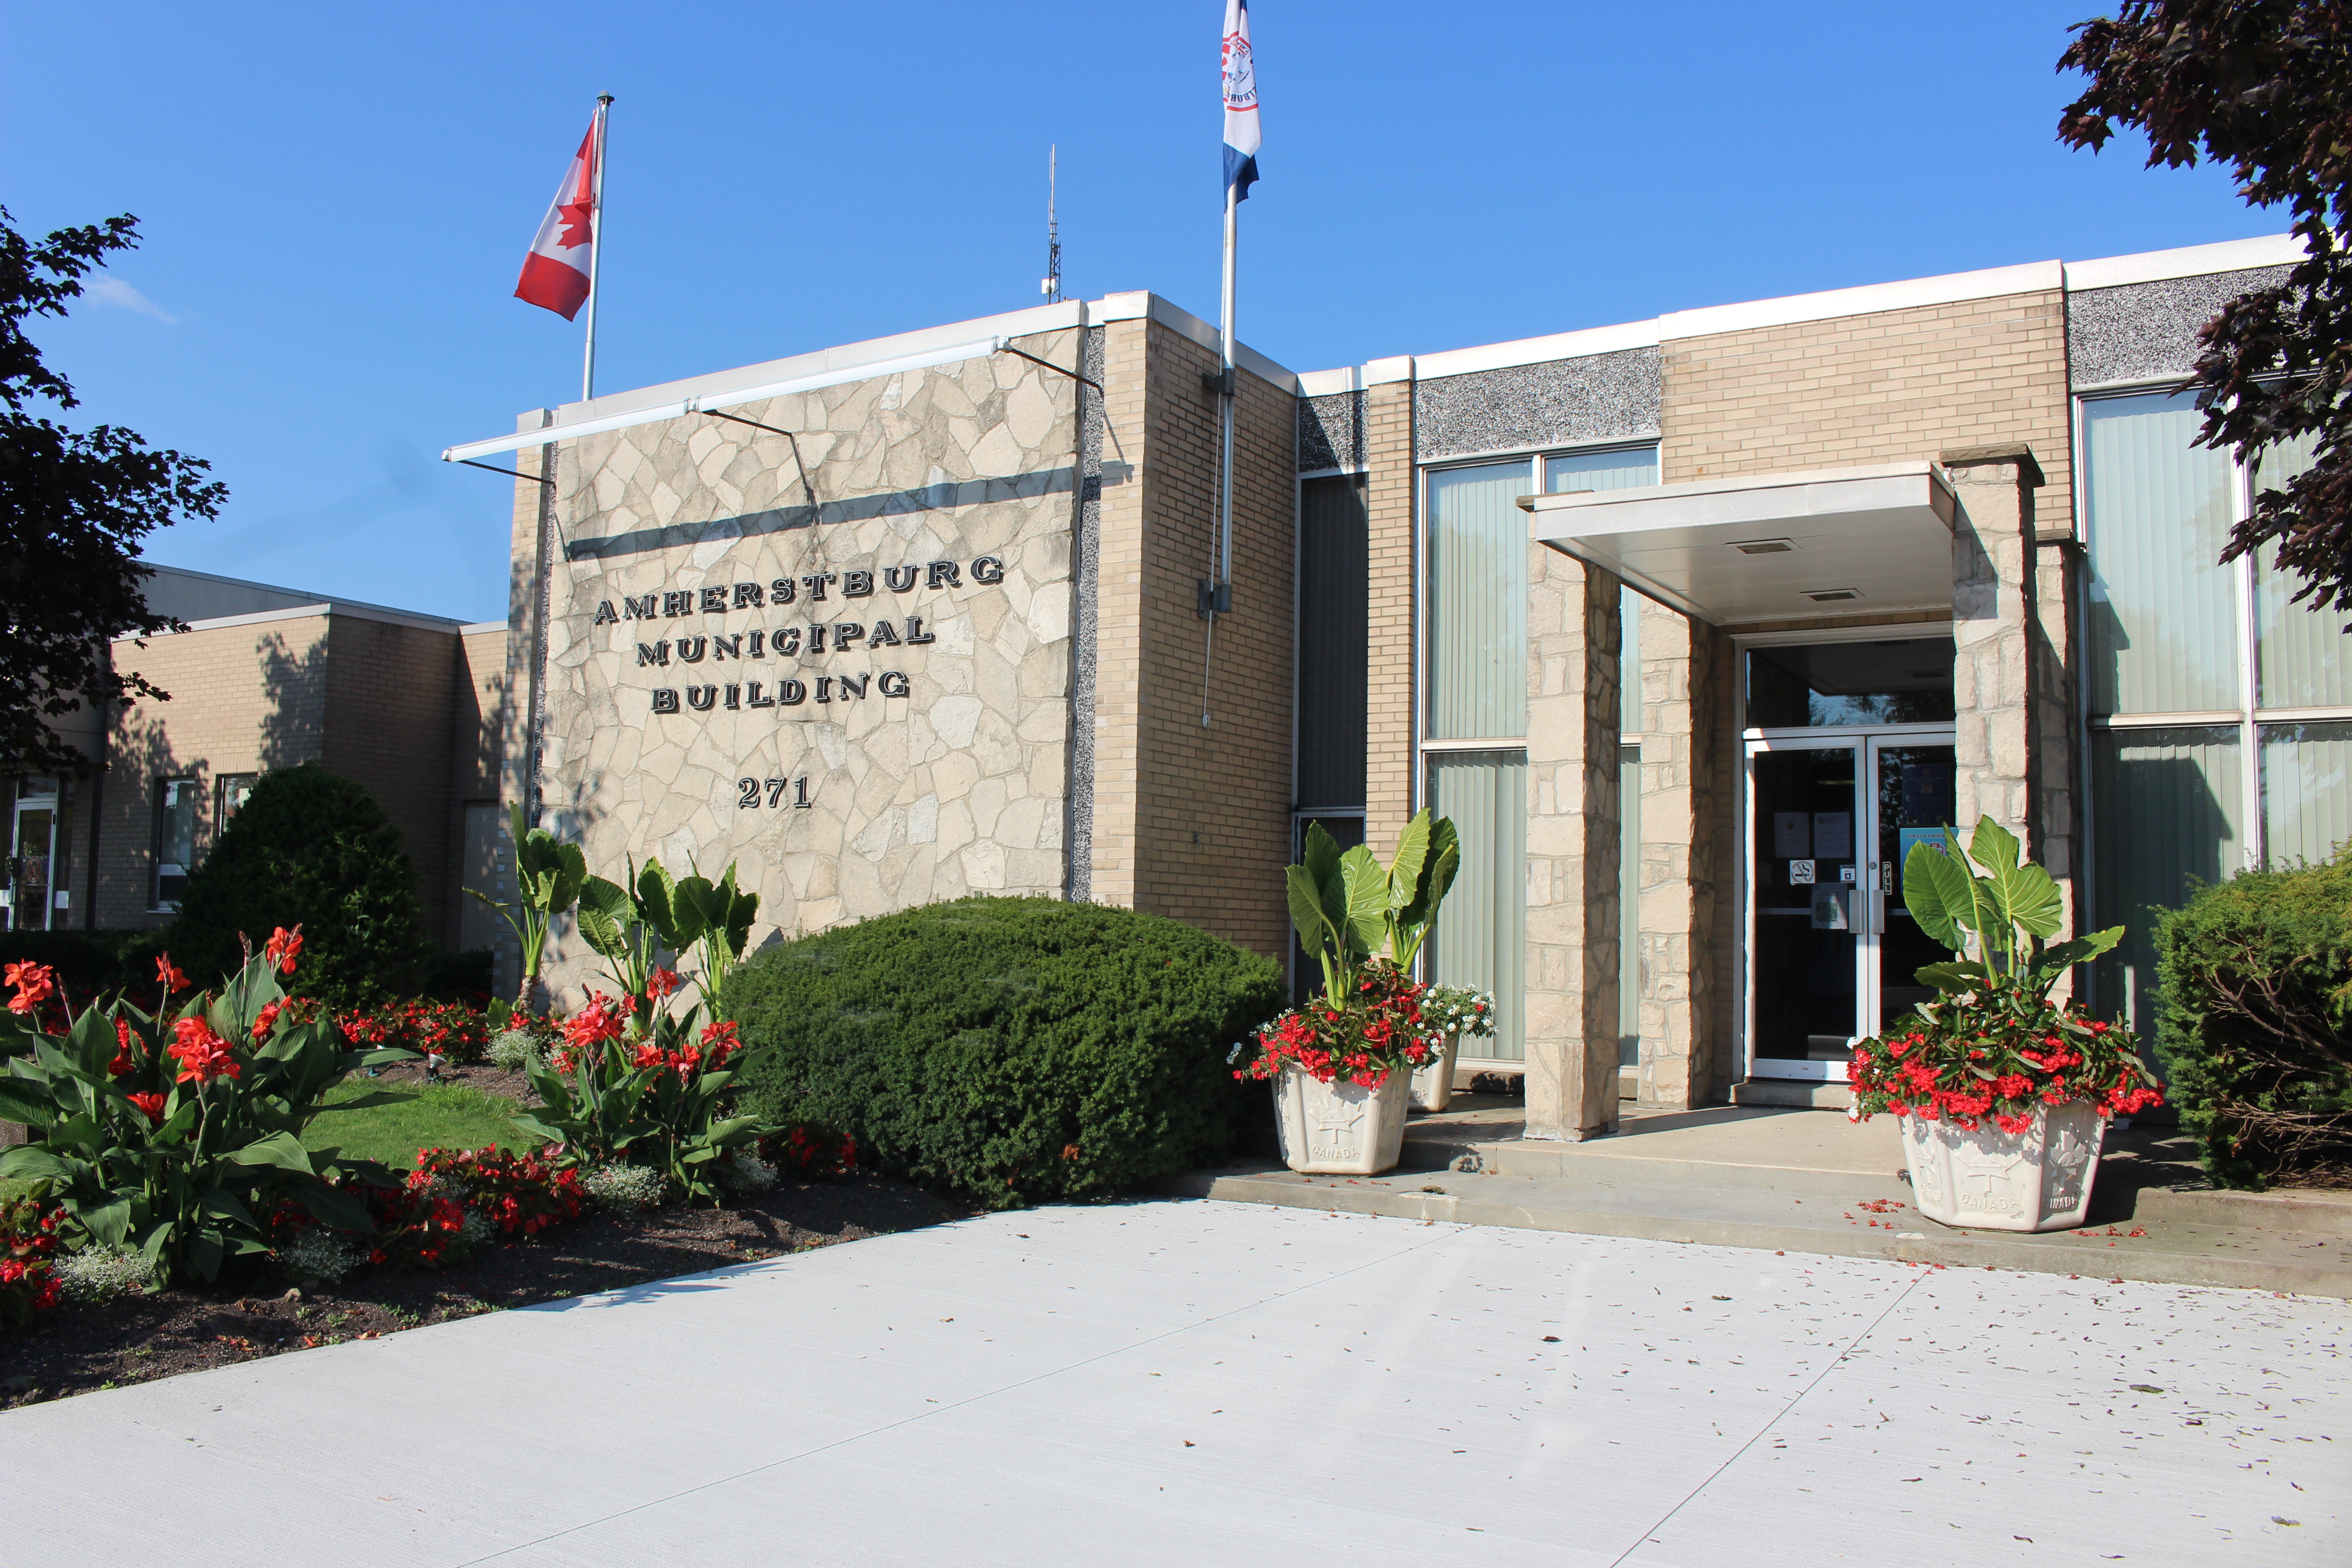 Amherstburg Hoping To Attract Hotel